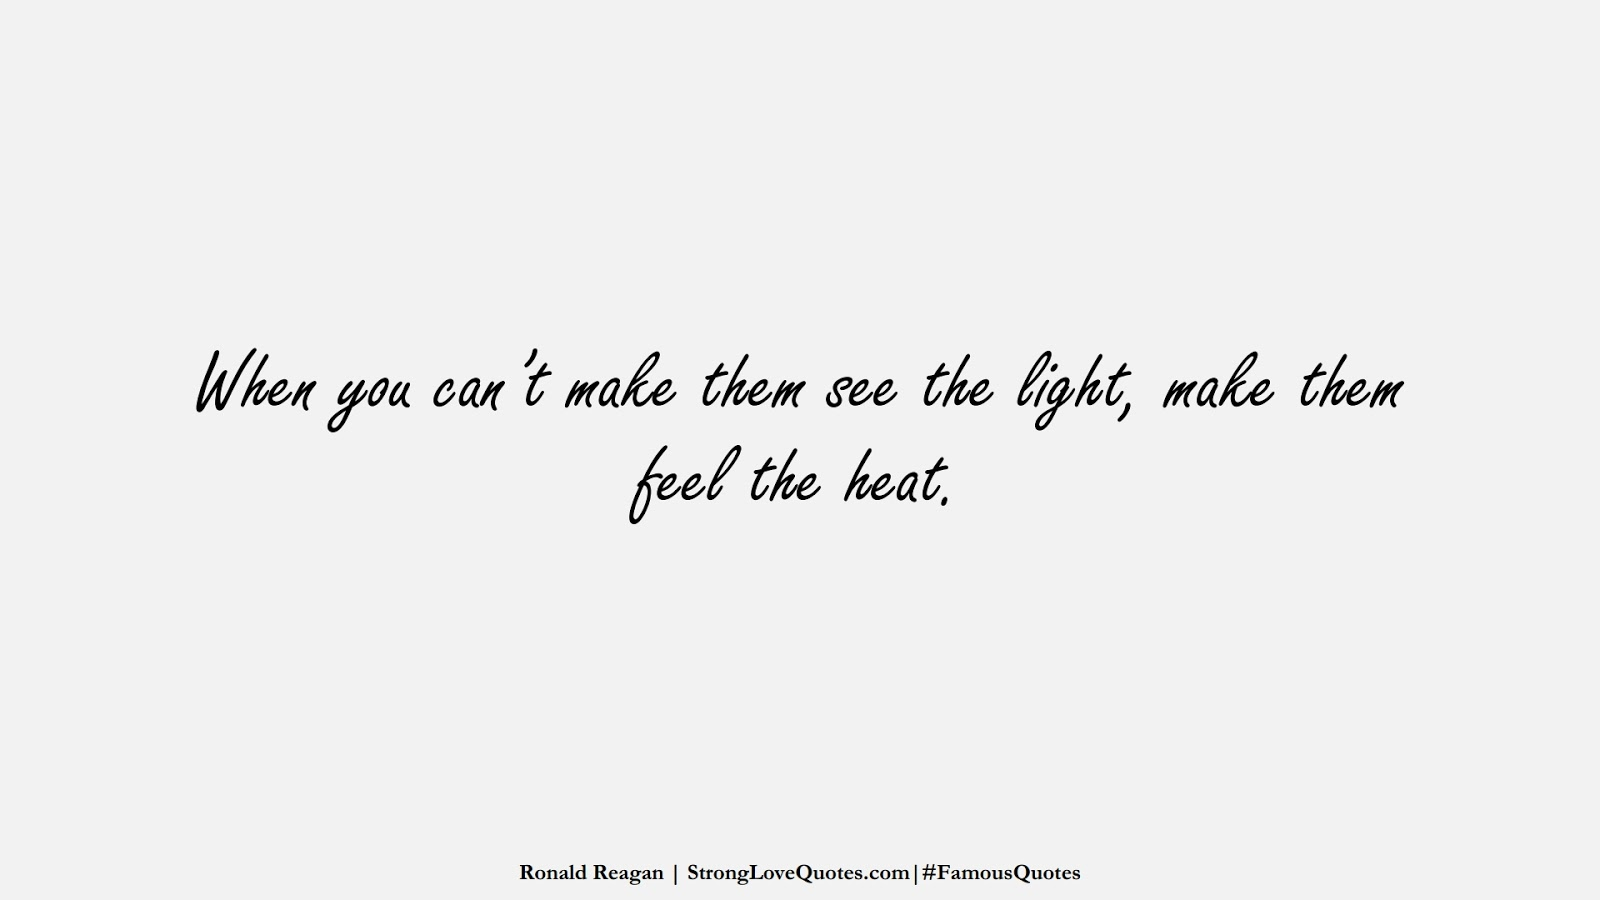 When you can't make them see the light, make them feel the heat. (Ronald Reagan);  #FamousQuotes